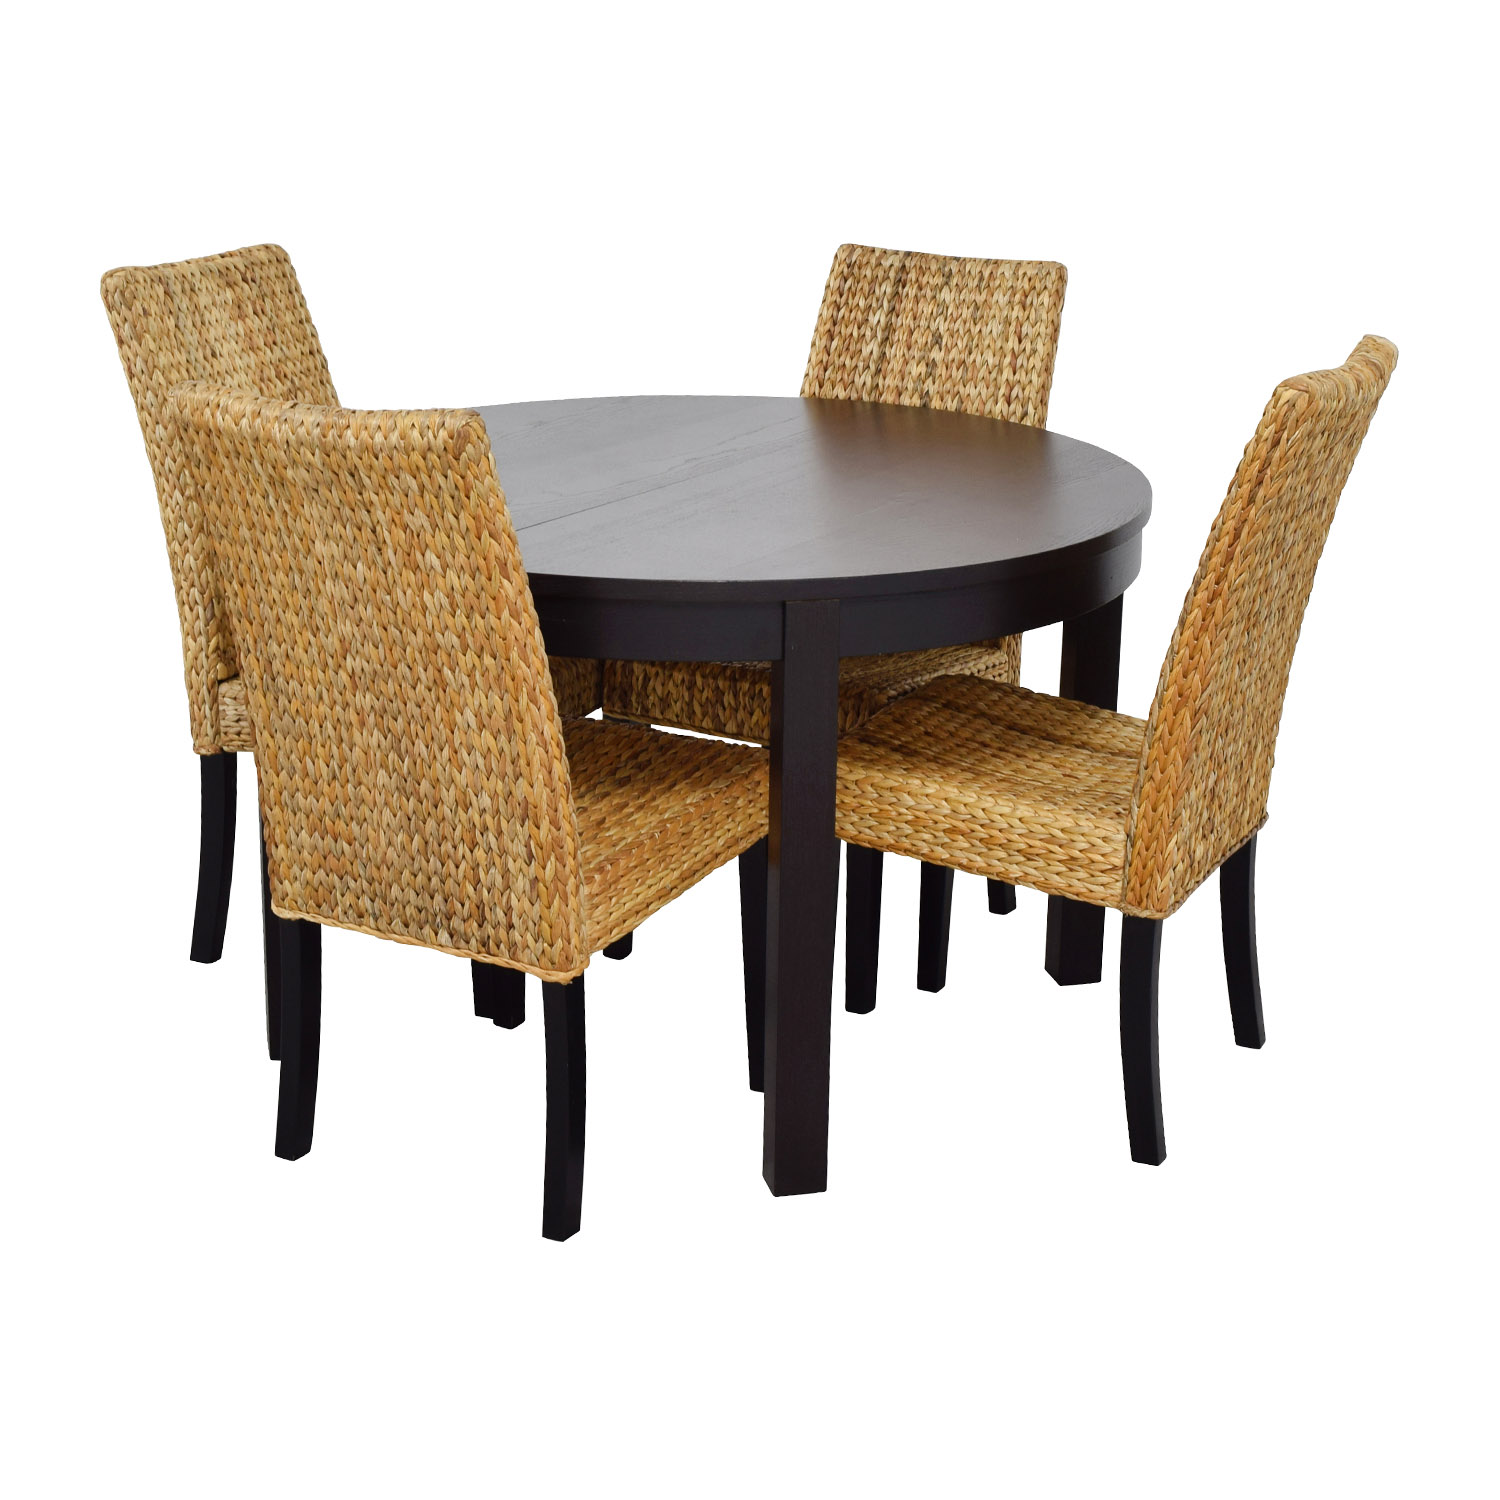 ... Shop Round Black Dining Table Set With Four Chairs Macyu0027s U0026 IKEA Dining  Sets ...